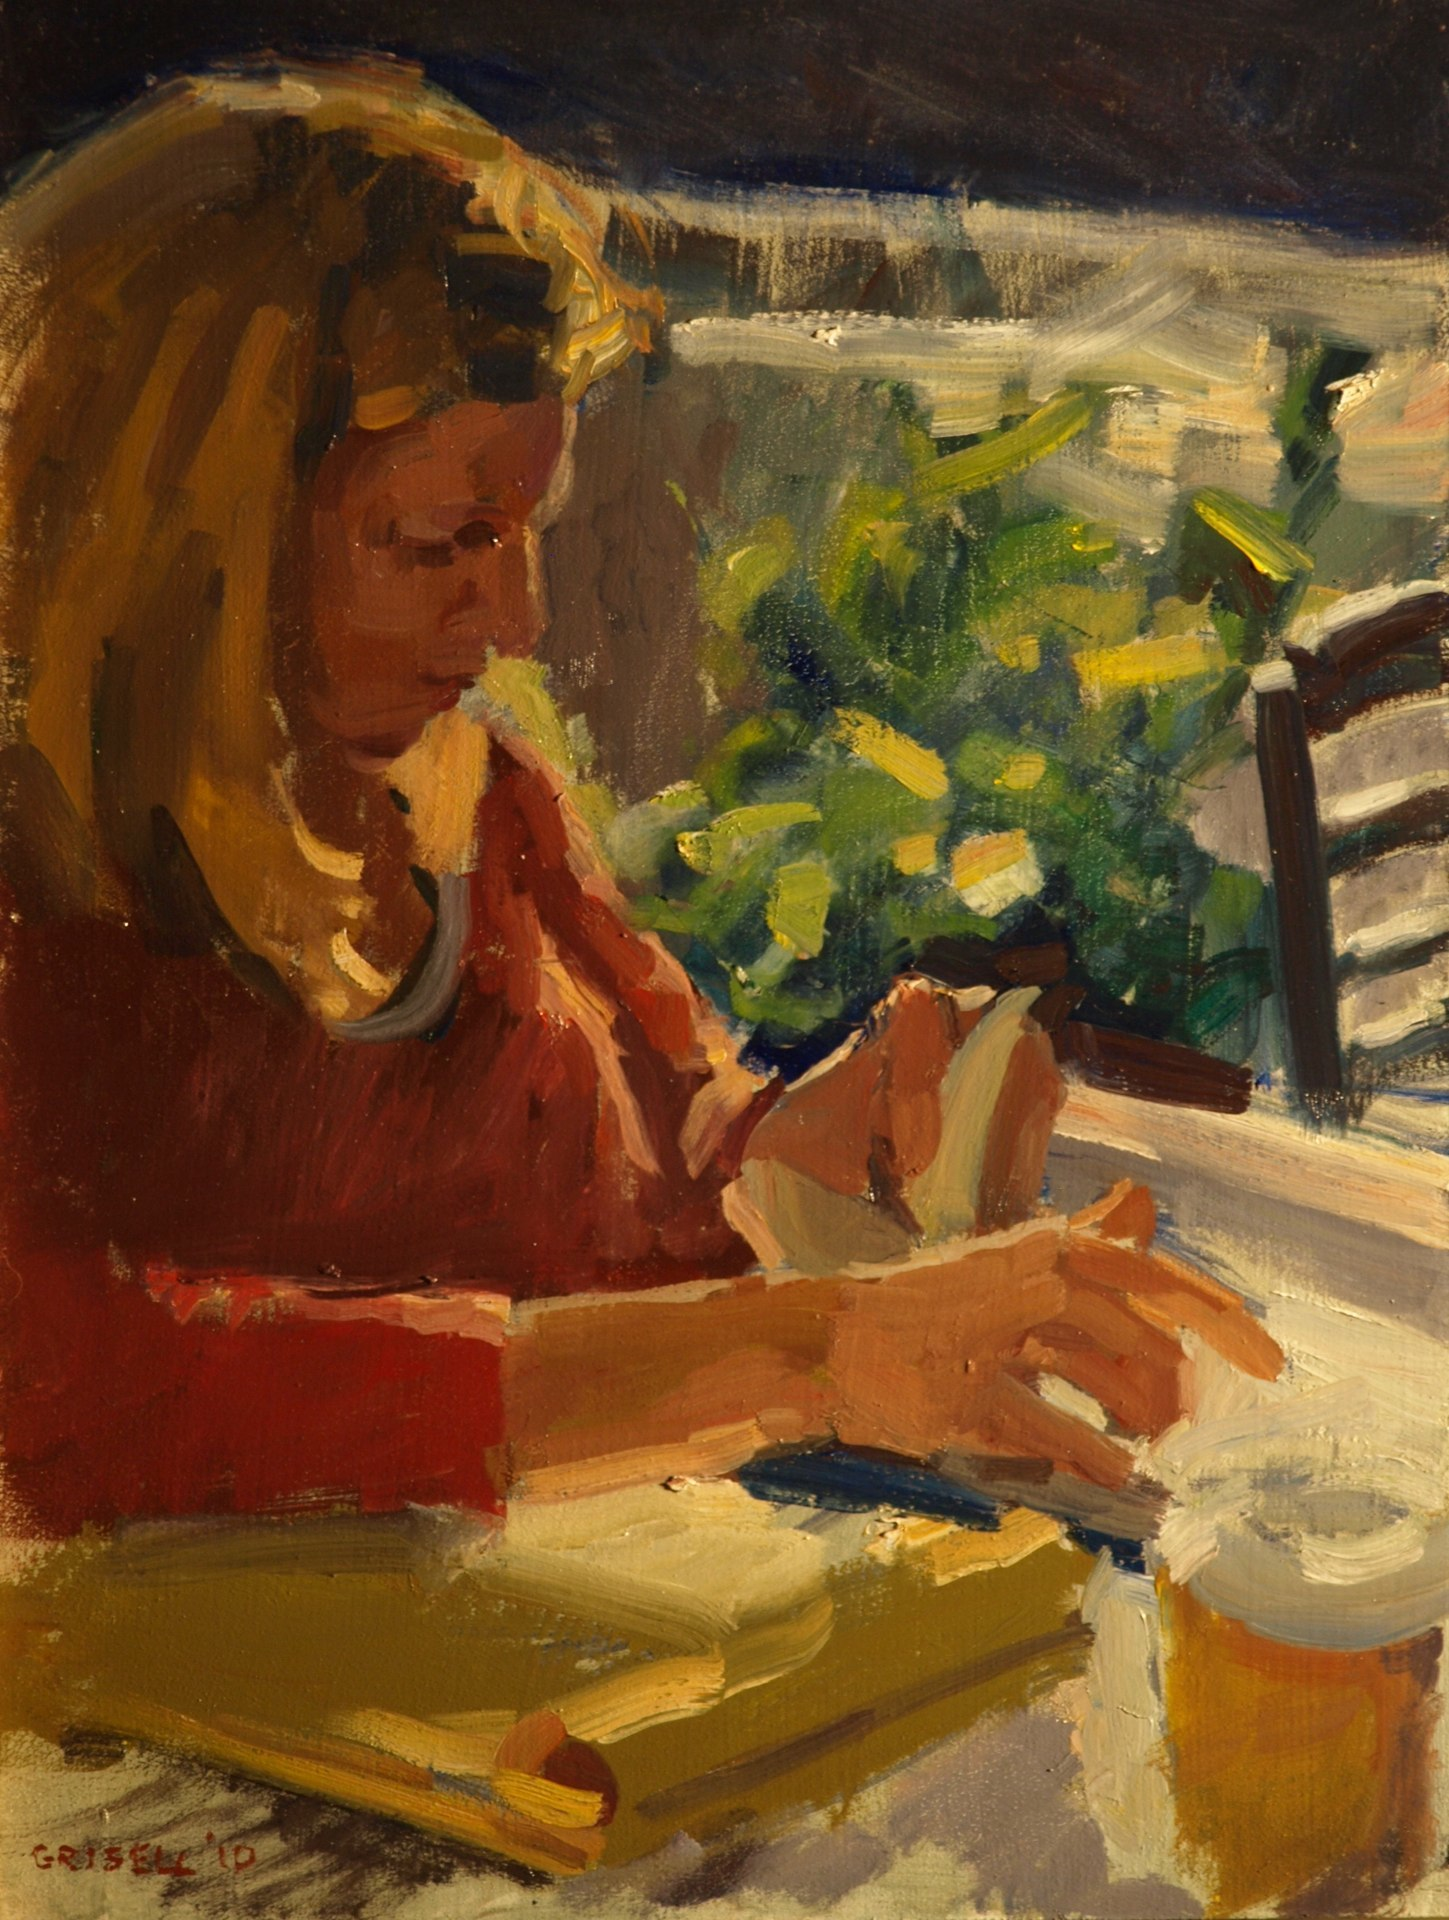 Book and Coffee, Oil on Panel, 16 x 12 Inches, by Susan Grisell, $300